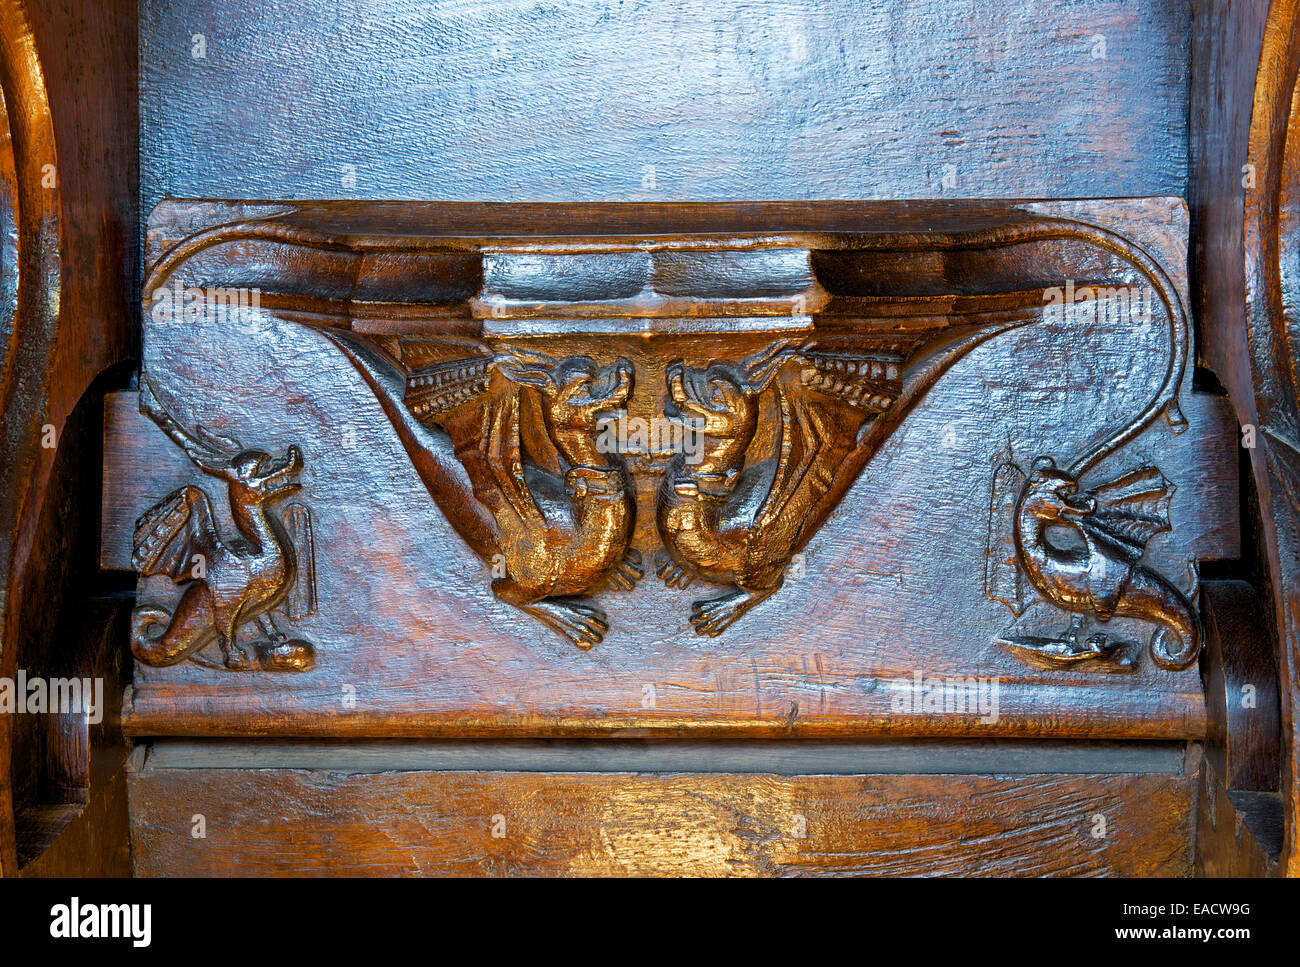 Carving of two dragons on choir stalls in St Mary's Church, Nantwich, Cheshire, England UK - Stock Image